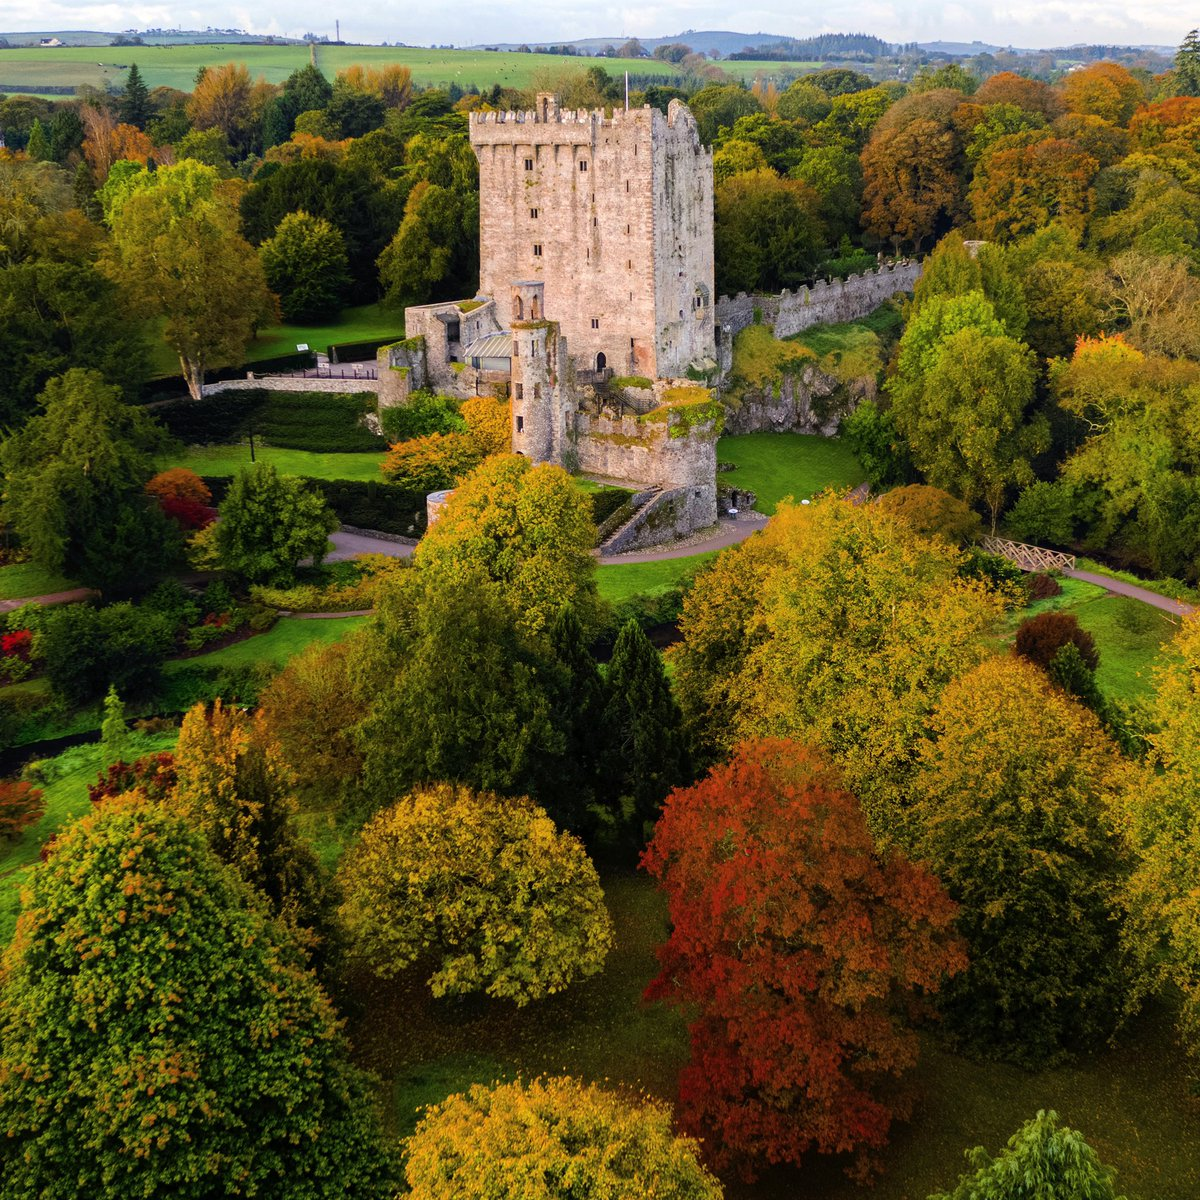 What a stunning day for an autumn stroll through our gardens! Breathtaking colour on show around every corner!  #staylocal #blarneycastleandgardens #purecorkwelcomes #cork #ireland #blarney #walks #like #follow #pictureoftheday #picoftheday #photography #autumn #autumnvibes https://t.co/qoWlJmmHHJ